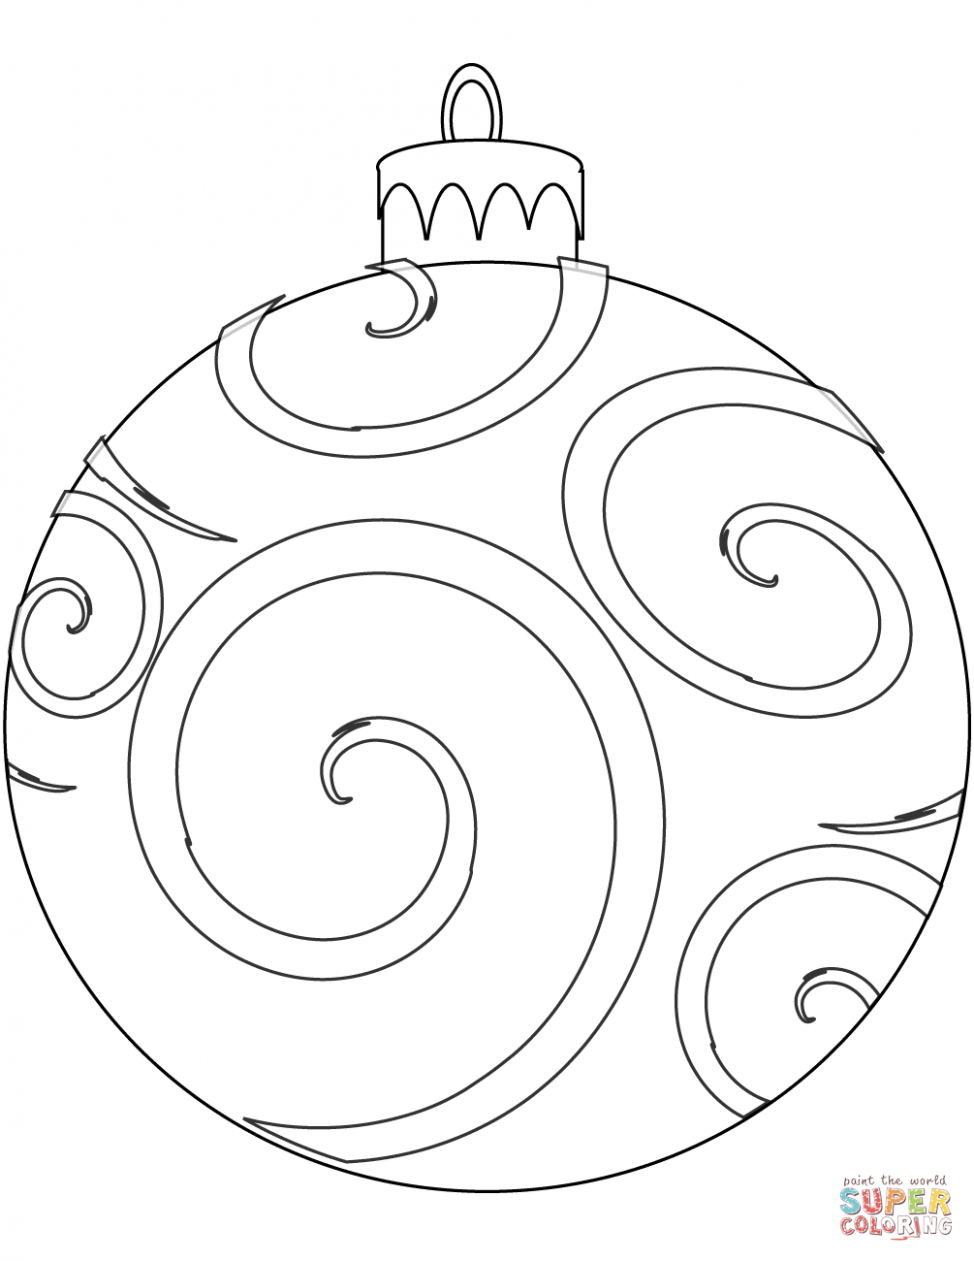 Holiday Ornament coloring page | Free Printable Coloring Pages – Coloring Pages With Christmas Ornaments